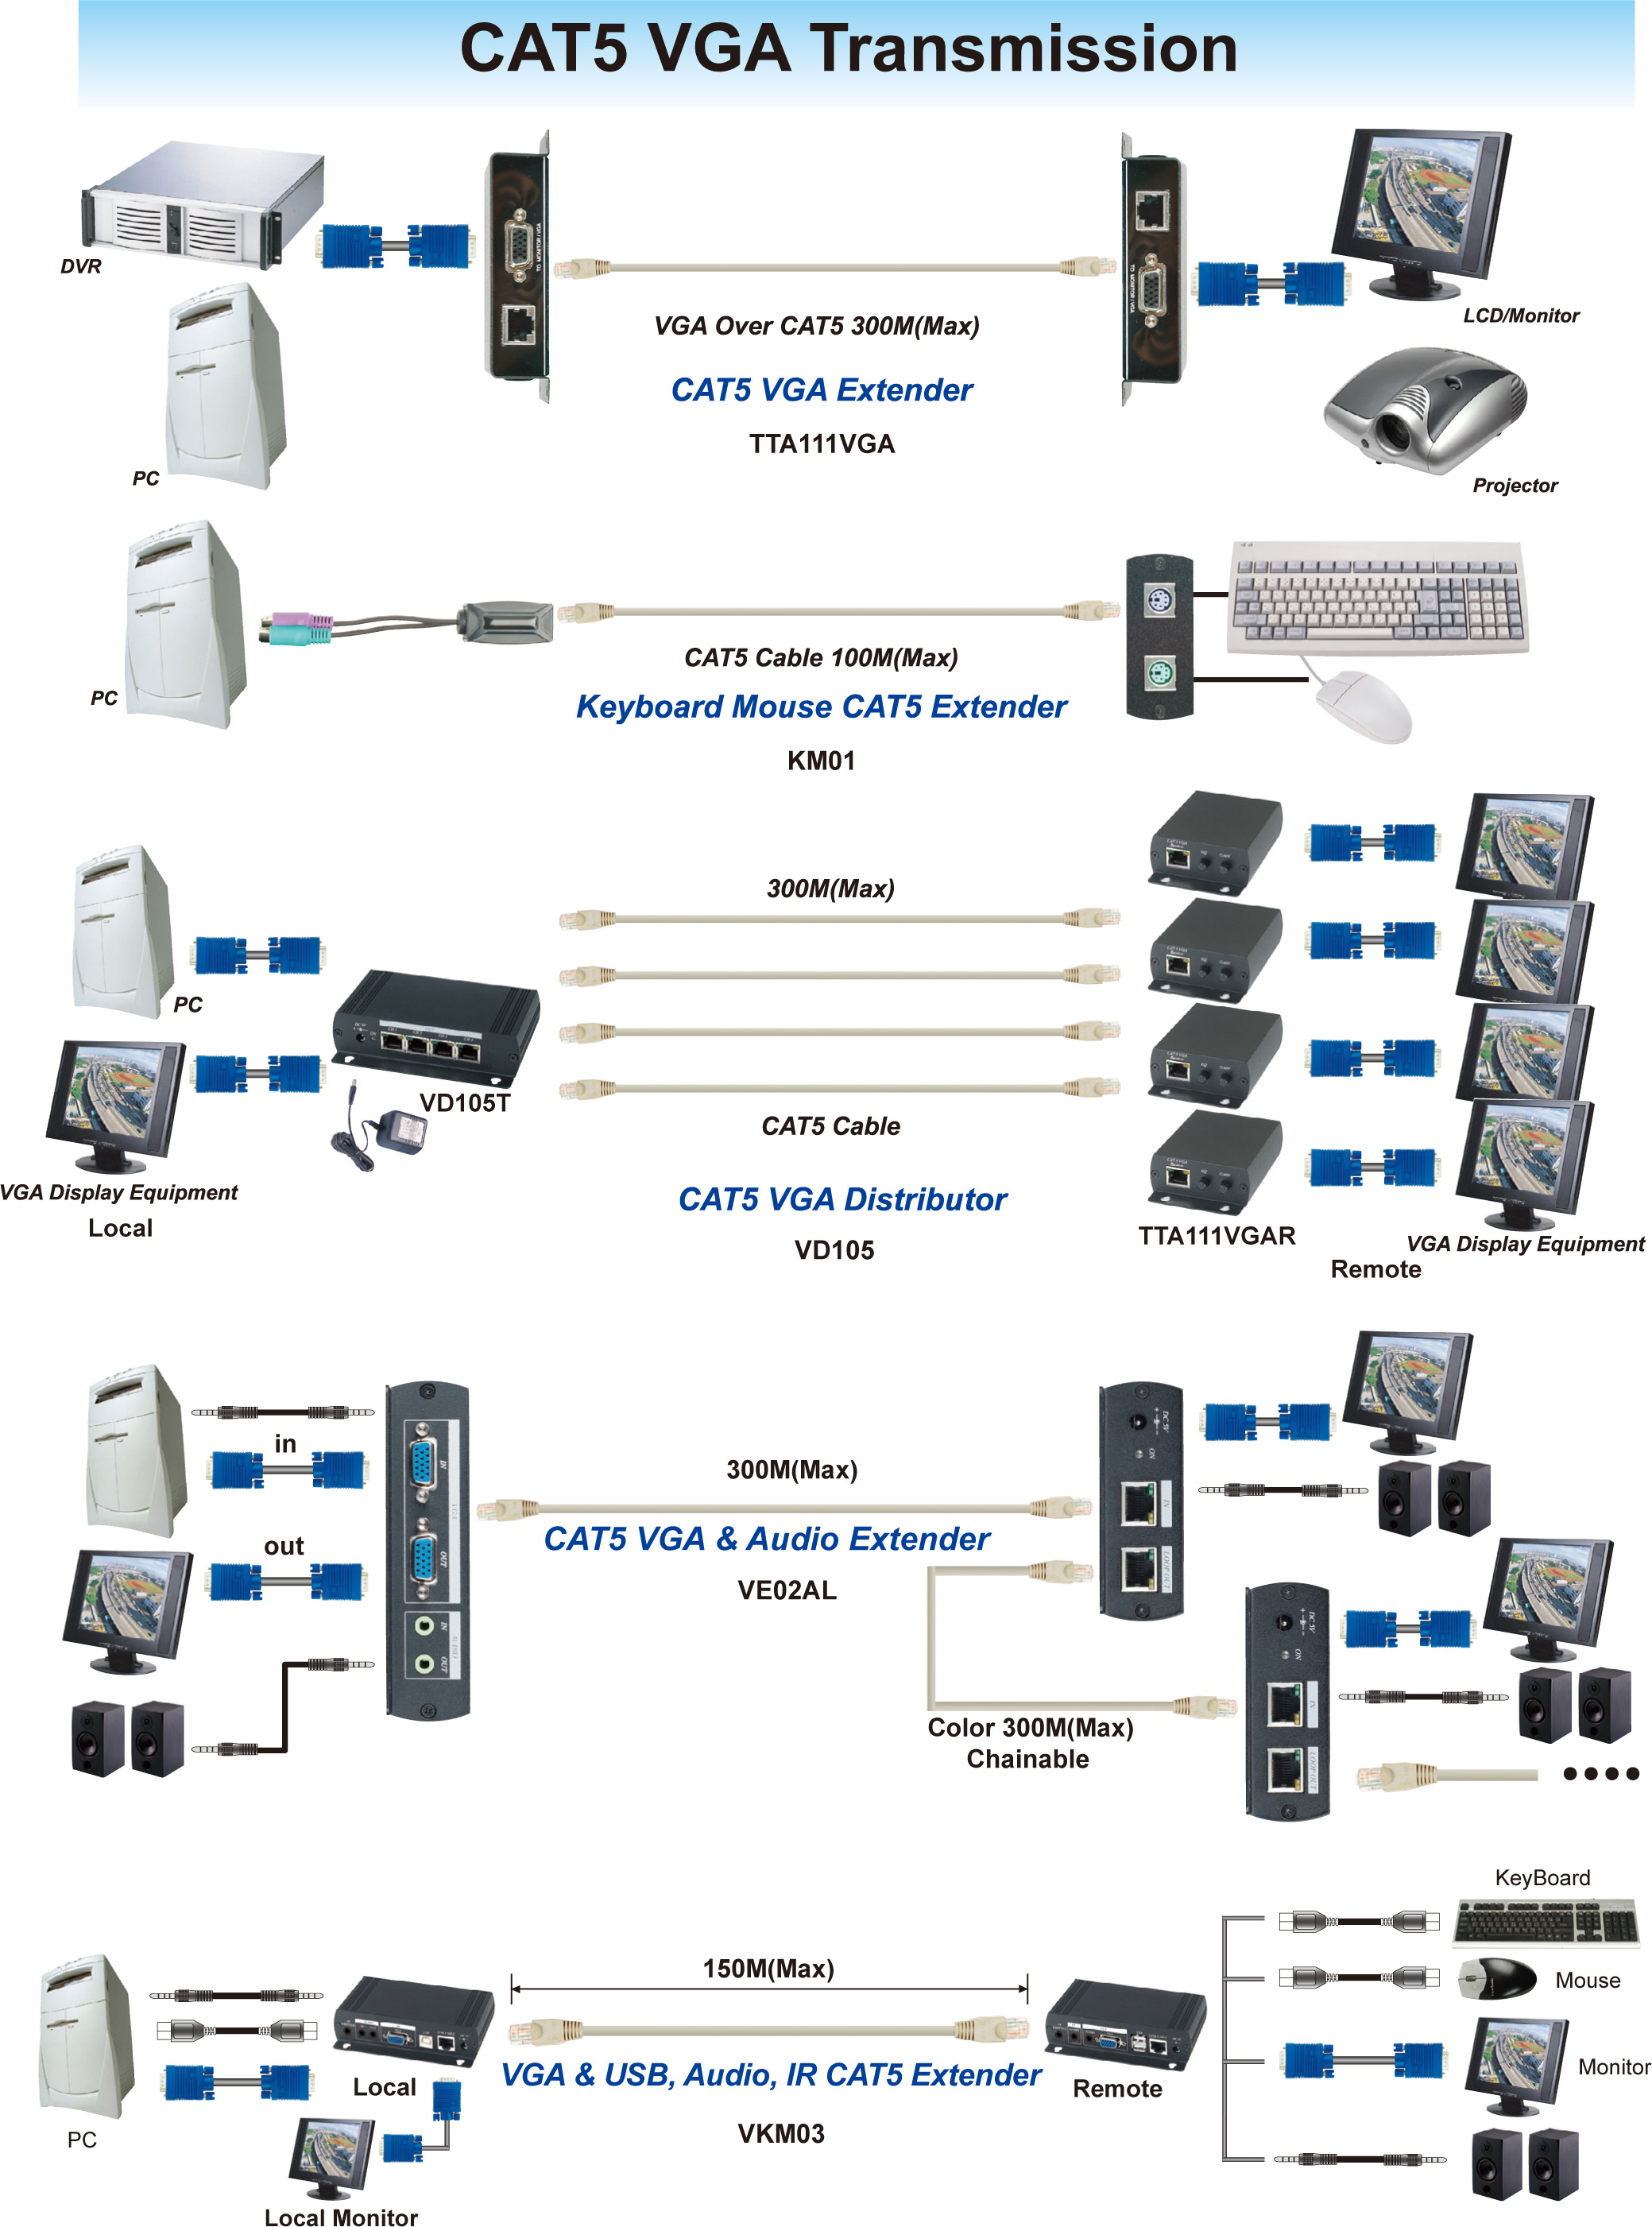 Index Of Mirrors Sct Products Application Guide Oxca Keu 300 Usb Cat 5 Extender 2 Port Kvm W Local Console 300m Cat5 Vga Transmission